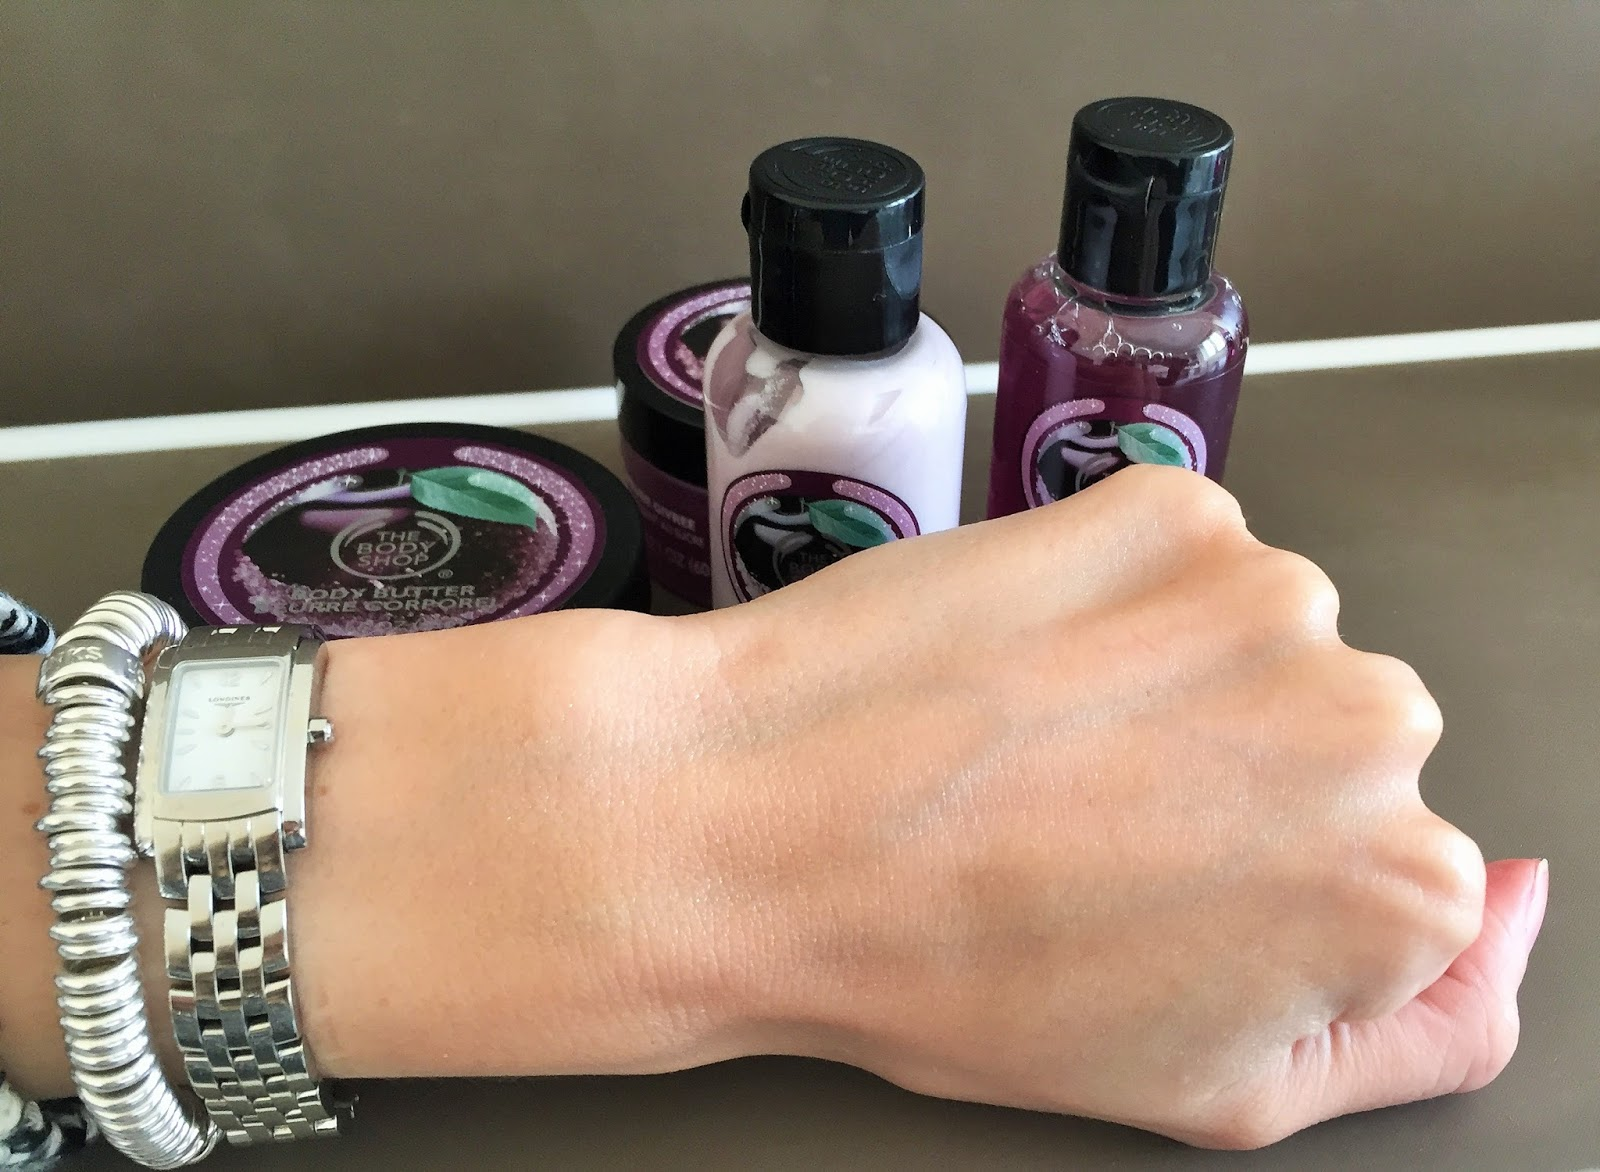 The Body Shop Christmas Gift Set Feel Good Tin in Frosted Plum shimmer lotion